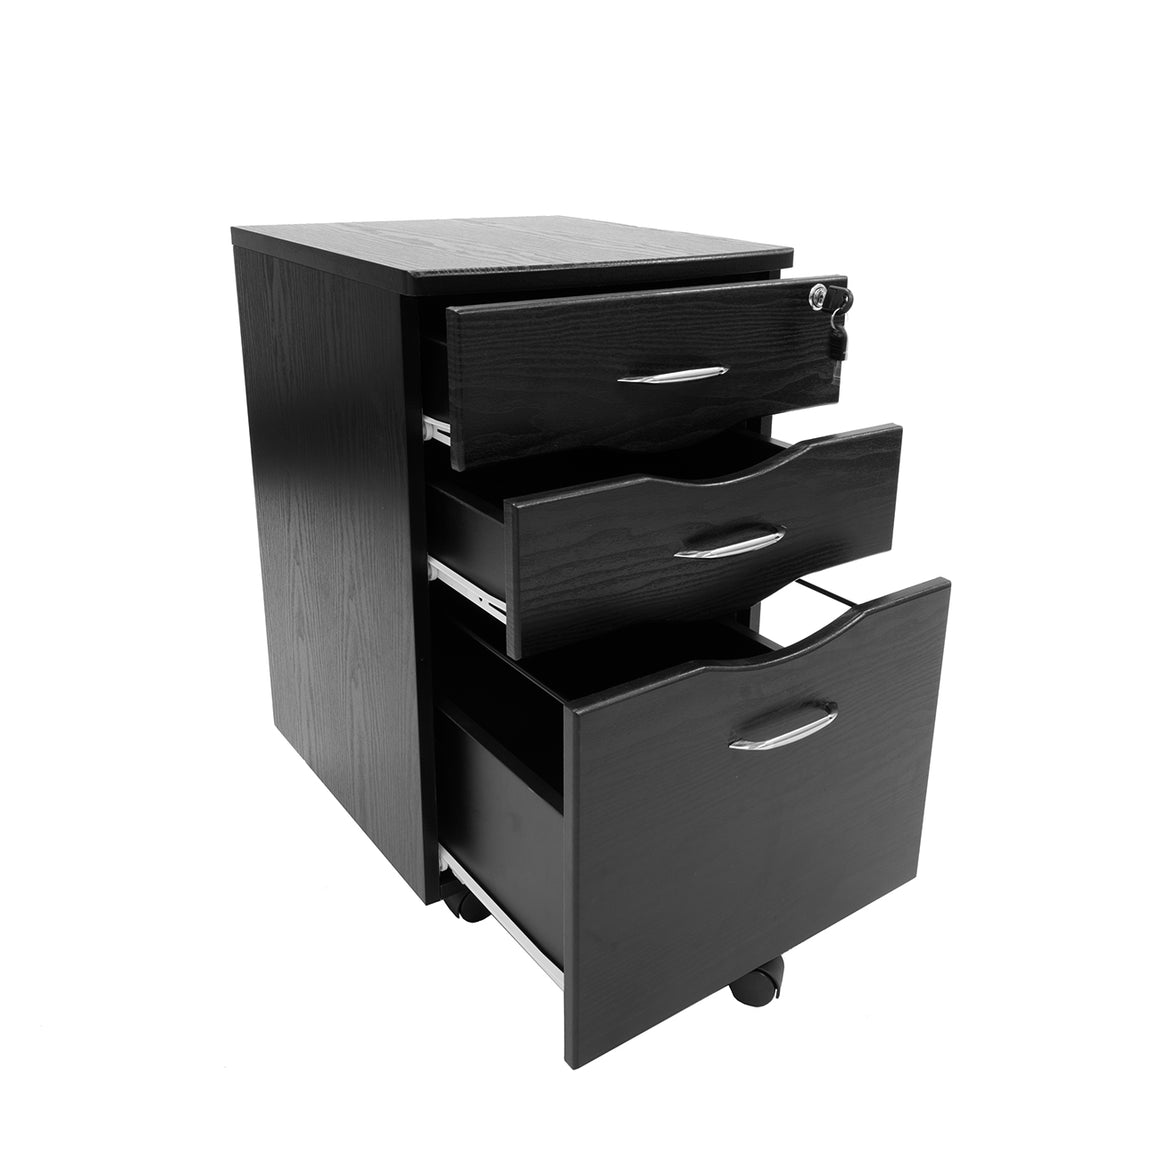 Rolling storage and File Cabinet